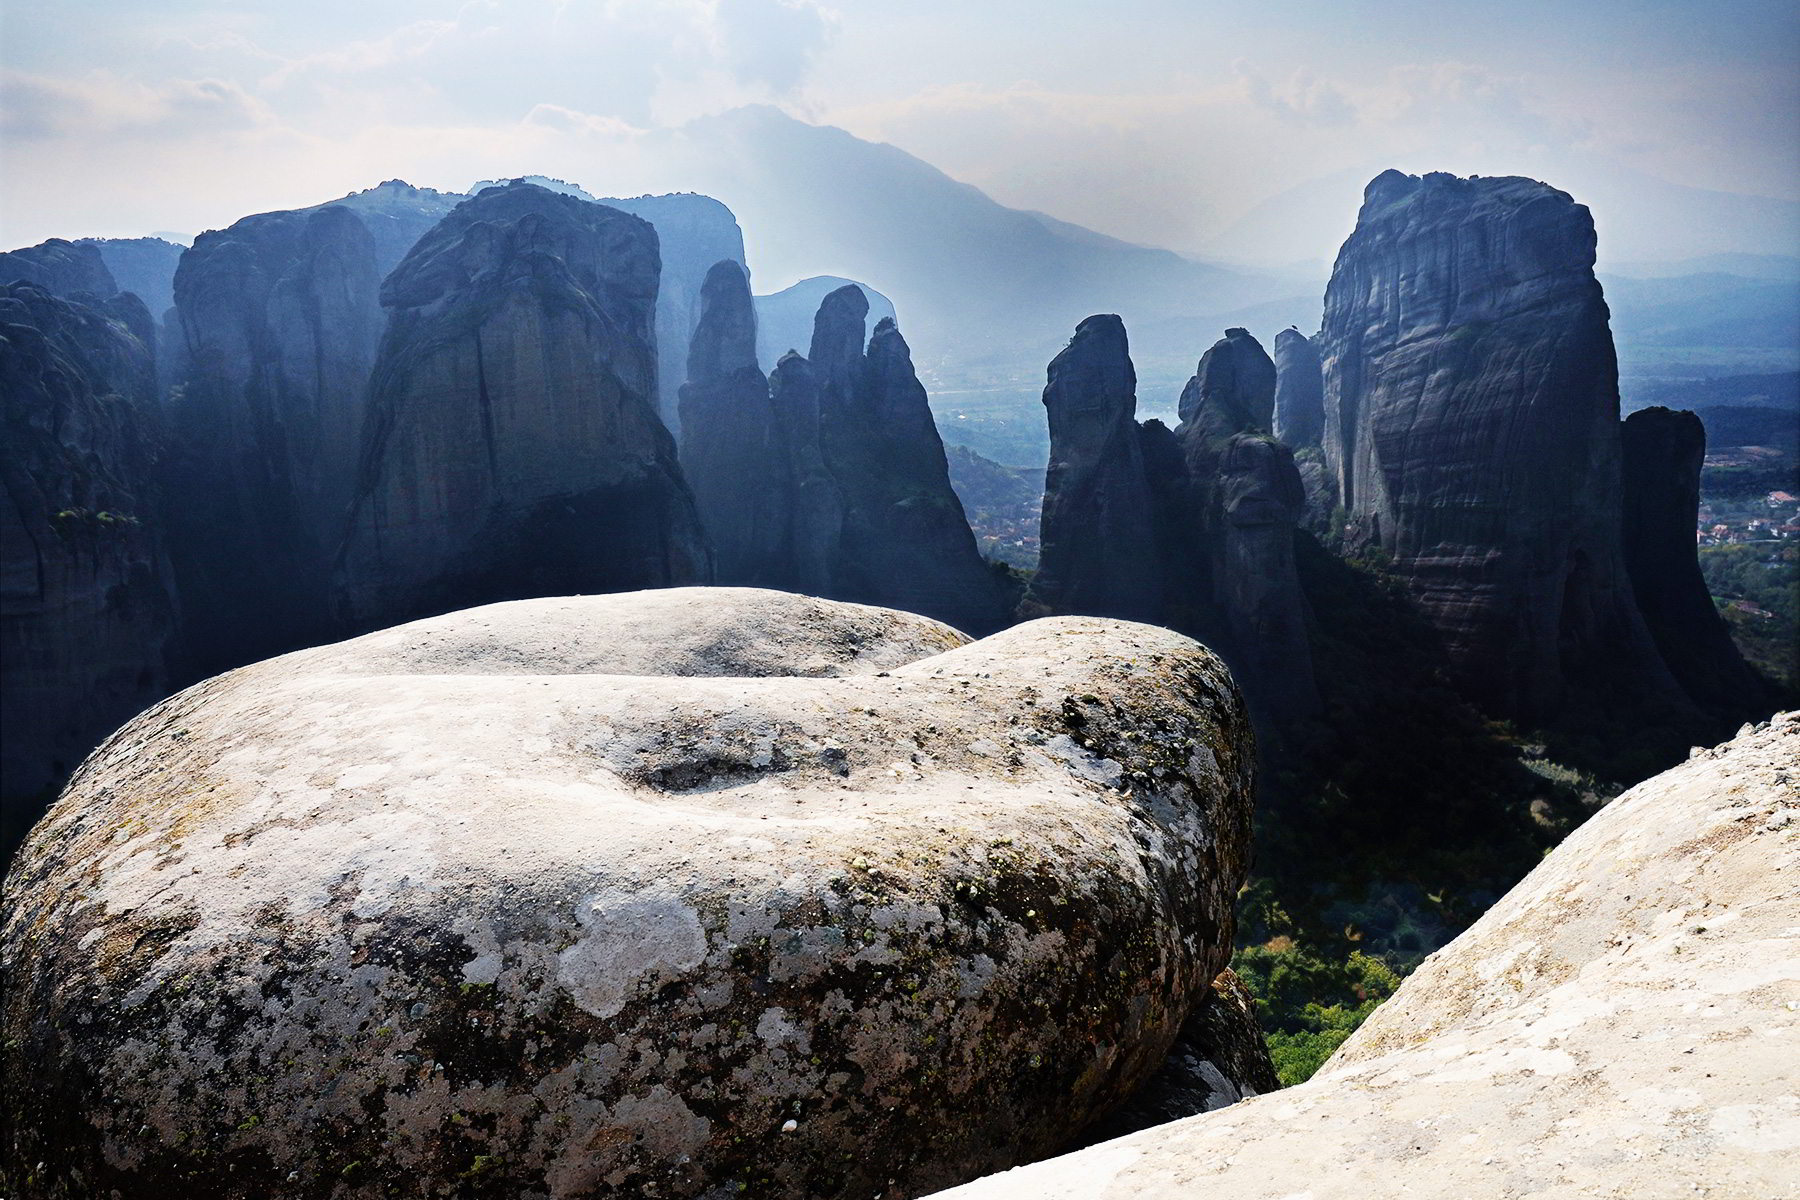 Panoramic view of Meteora, above the mountains